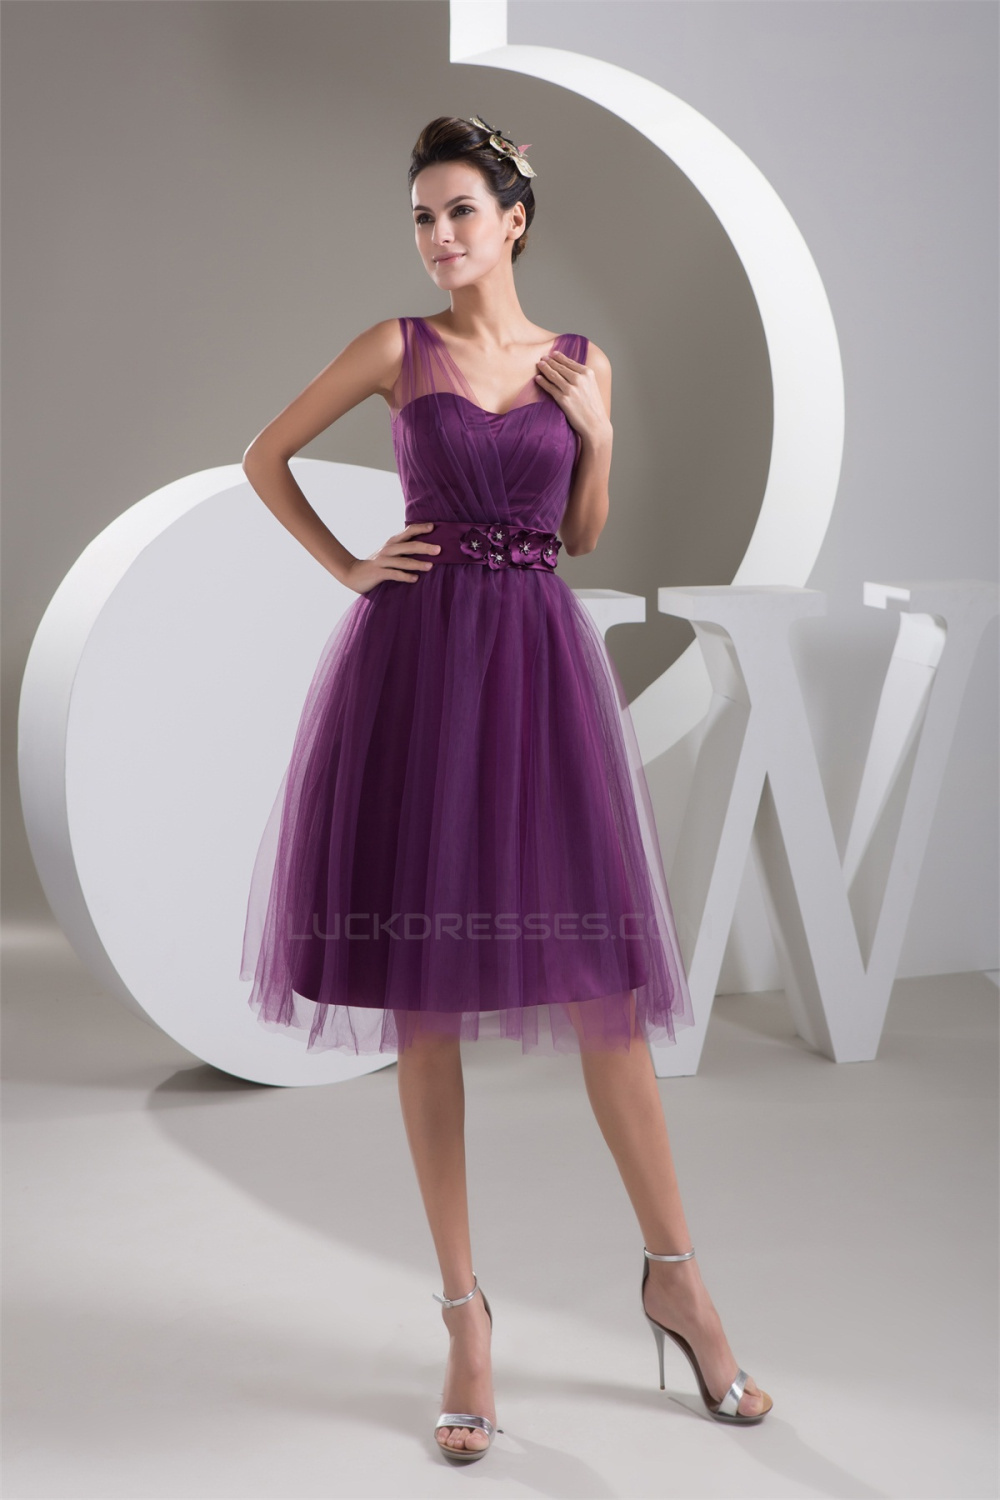 Satin Fine Netting V-Neck Knee-Length Short Purple Bridesmaid ...